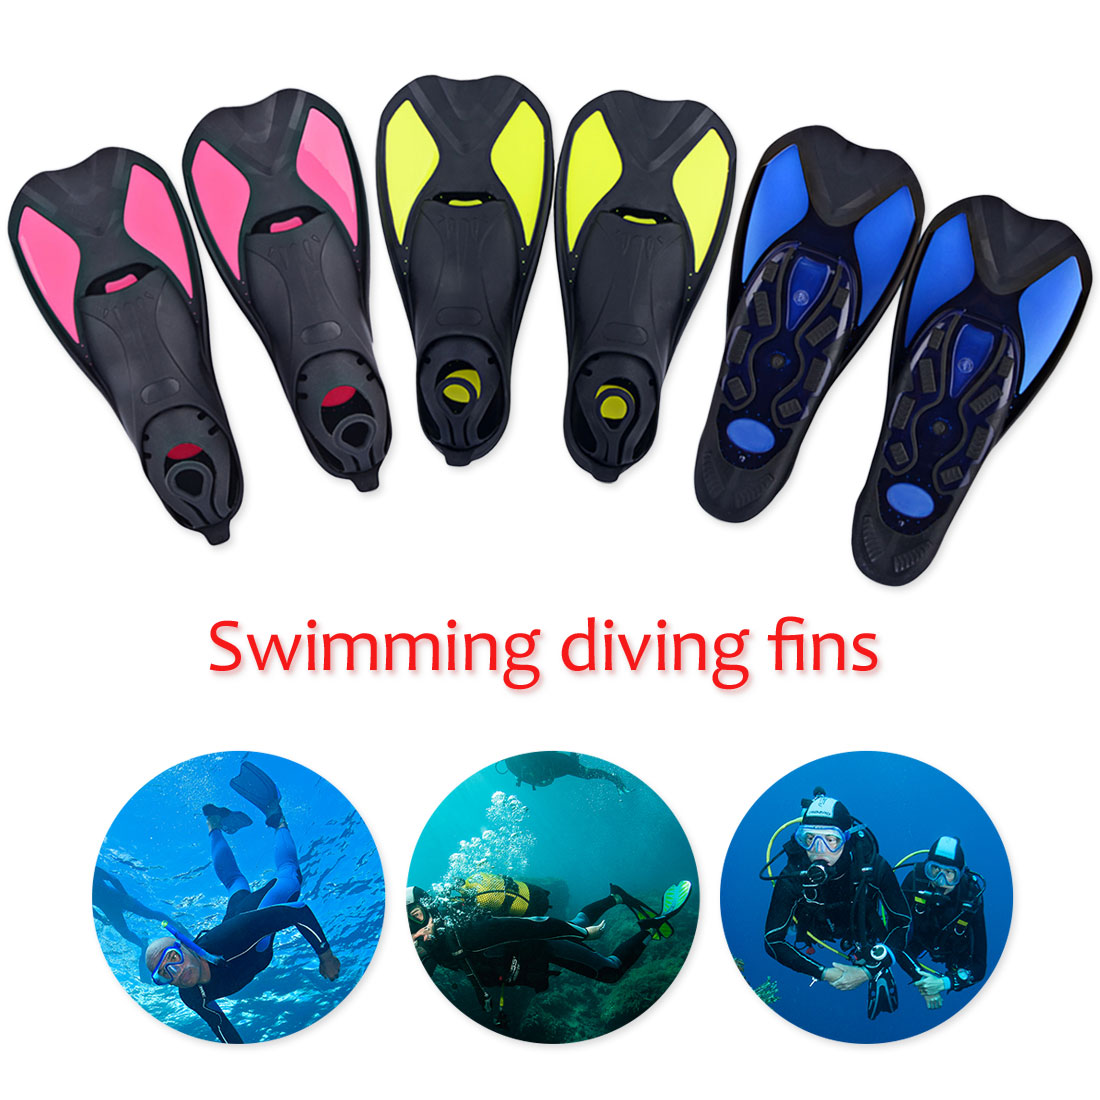 1 Pair Snorkeling Foot Flipper Diving Swimming Fins Flexible Comfort Adult Kids Short Frog Shoes Beginner Swimming Equipment